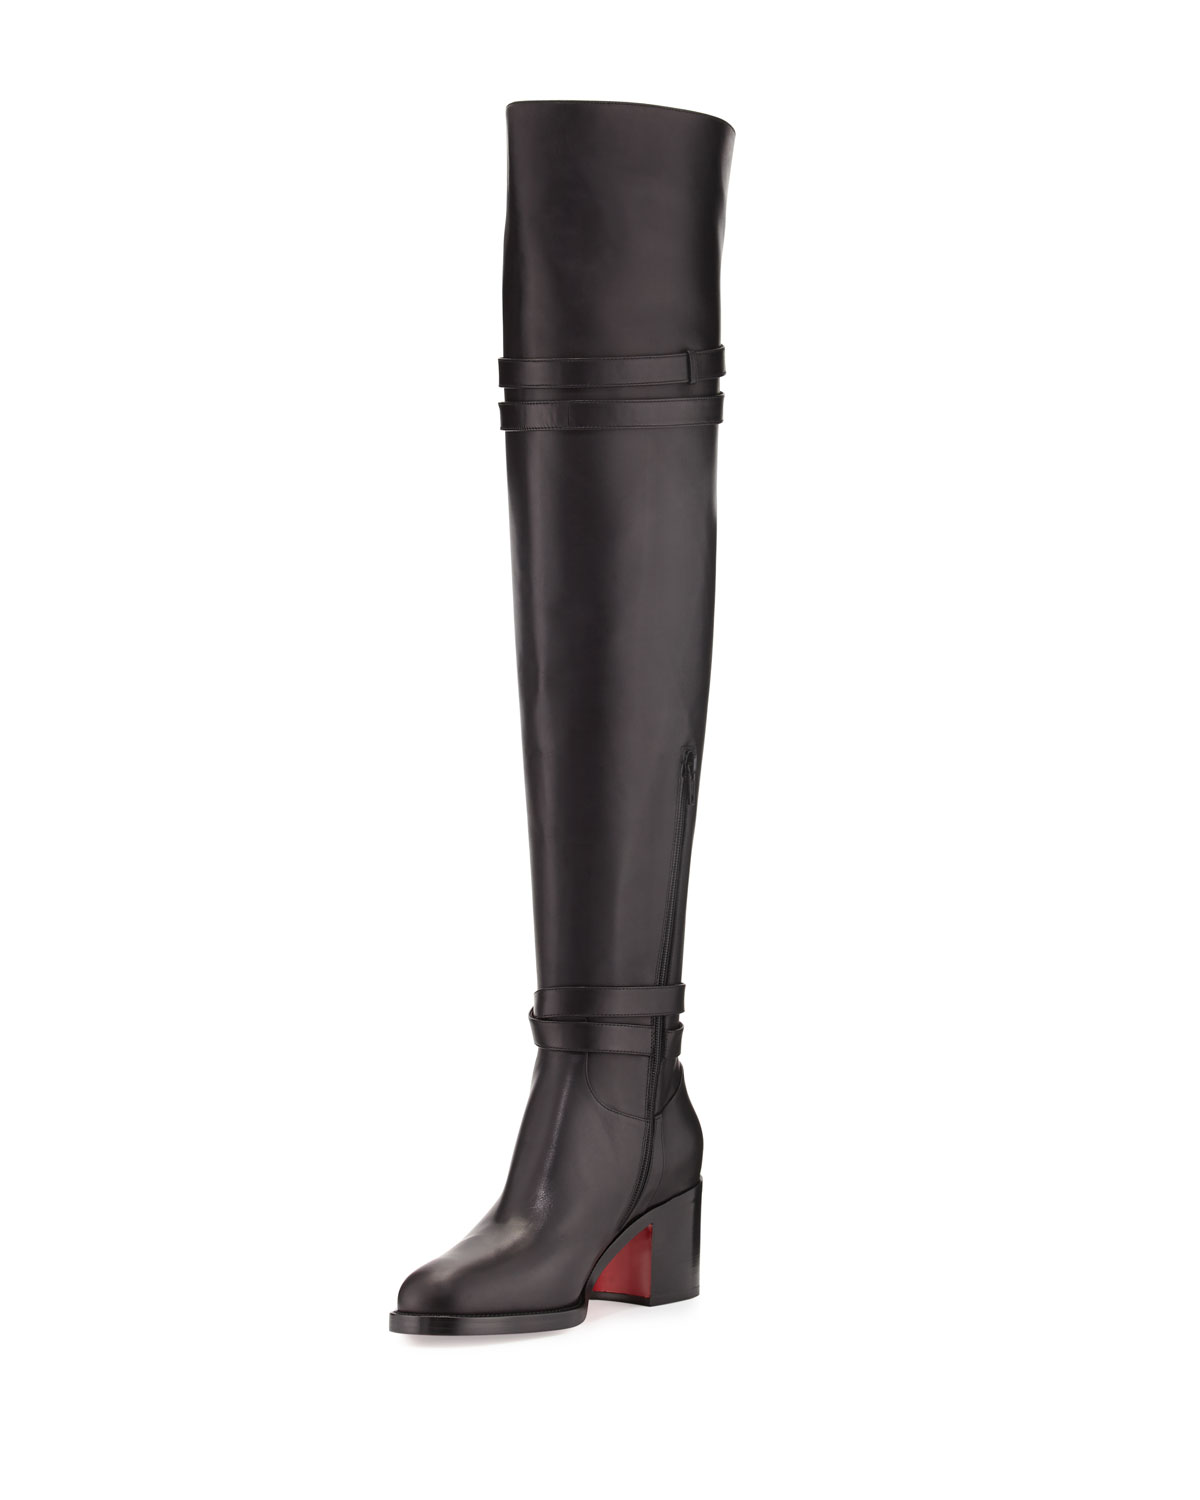 91688d19ad6 Christian Louboutin Karialta Leather 70mm Red Sole Over-the-Knee ...